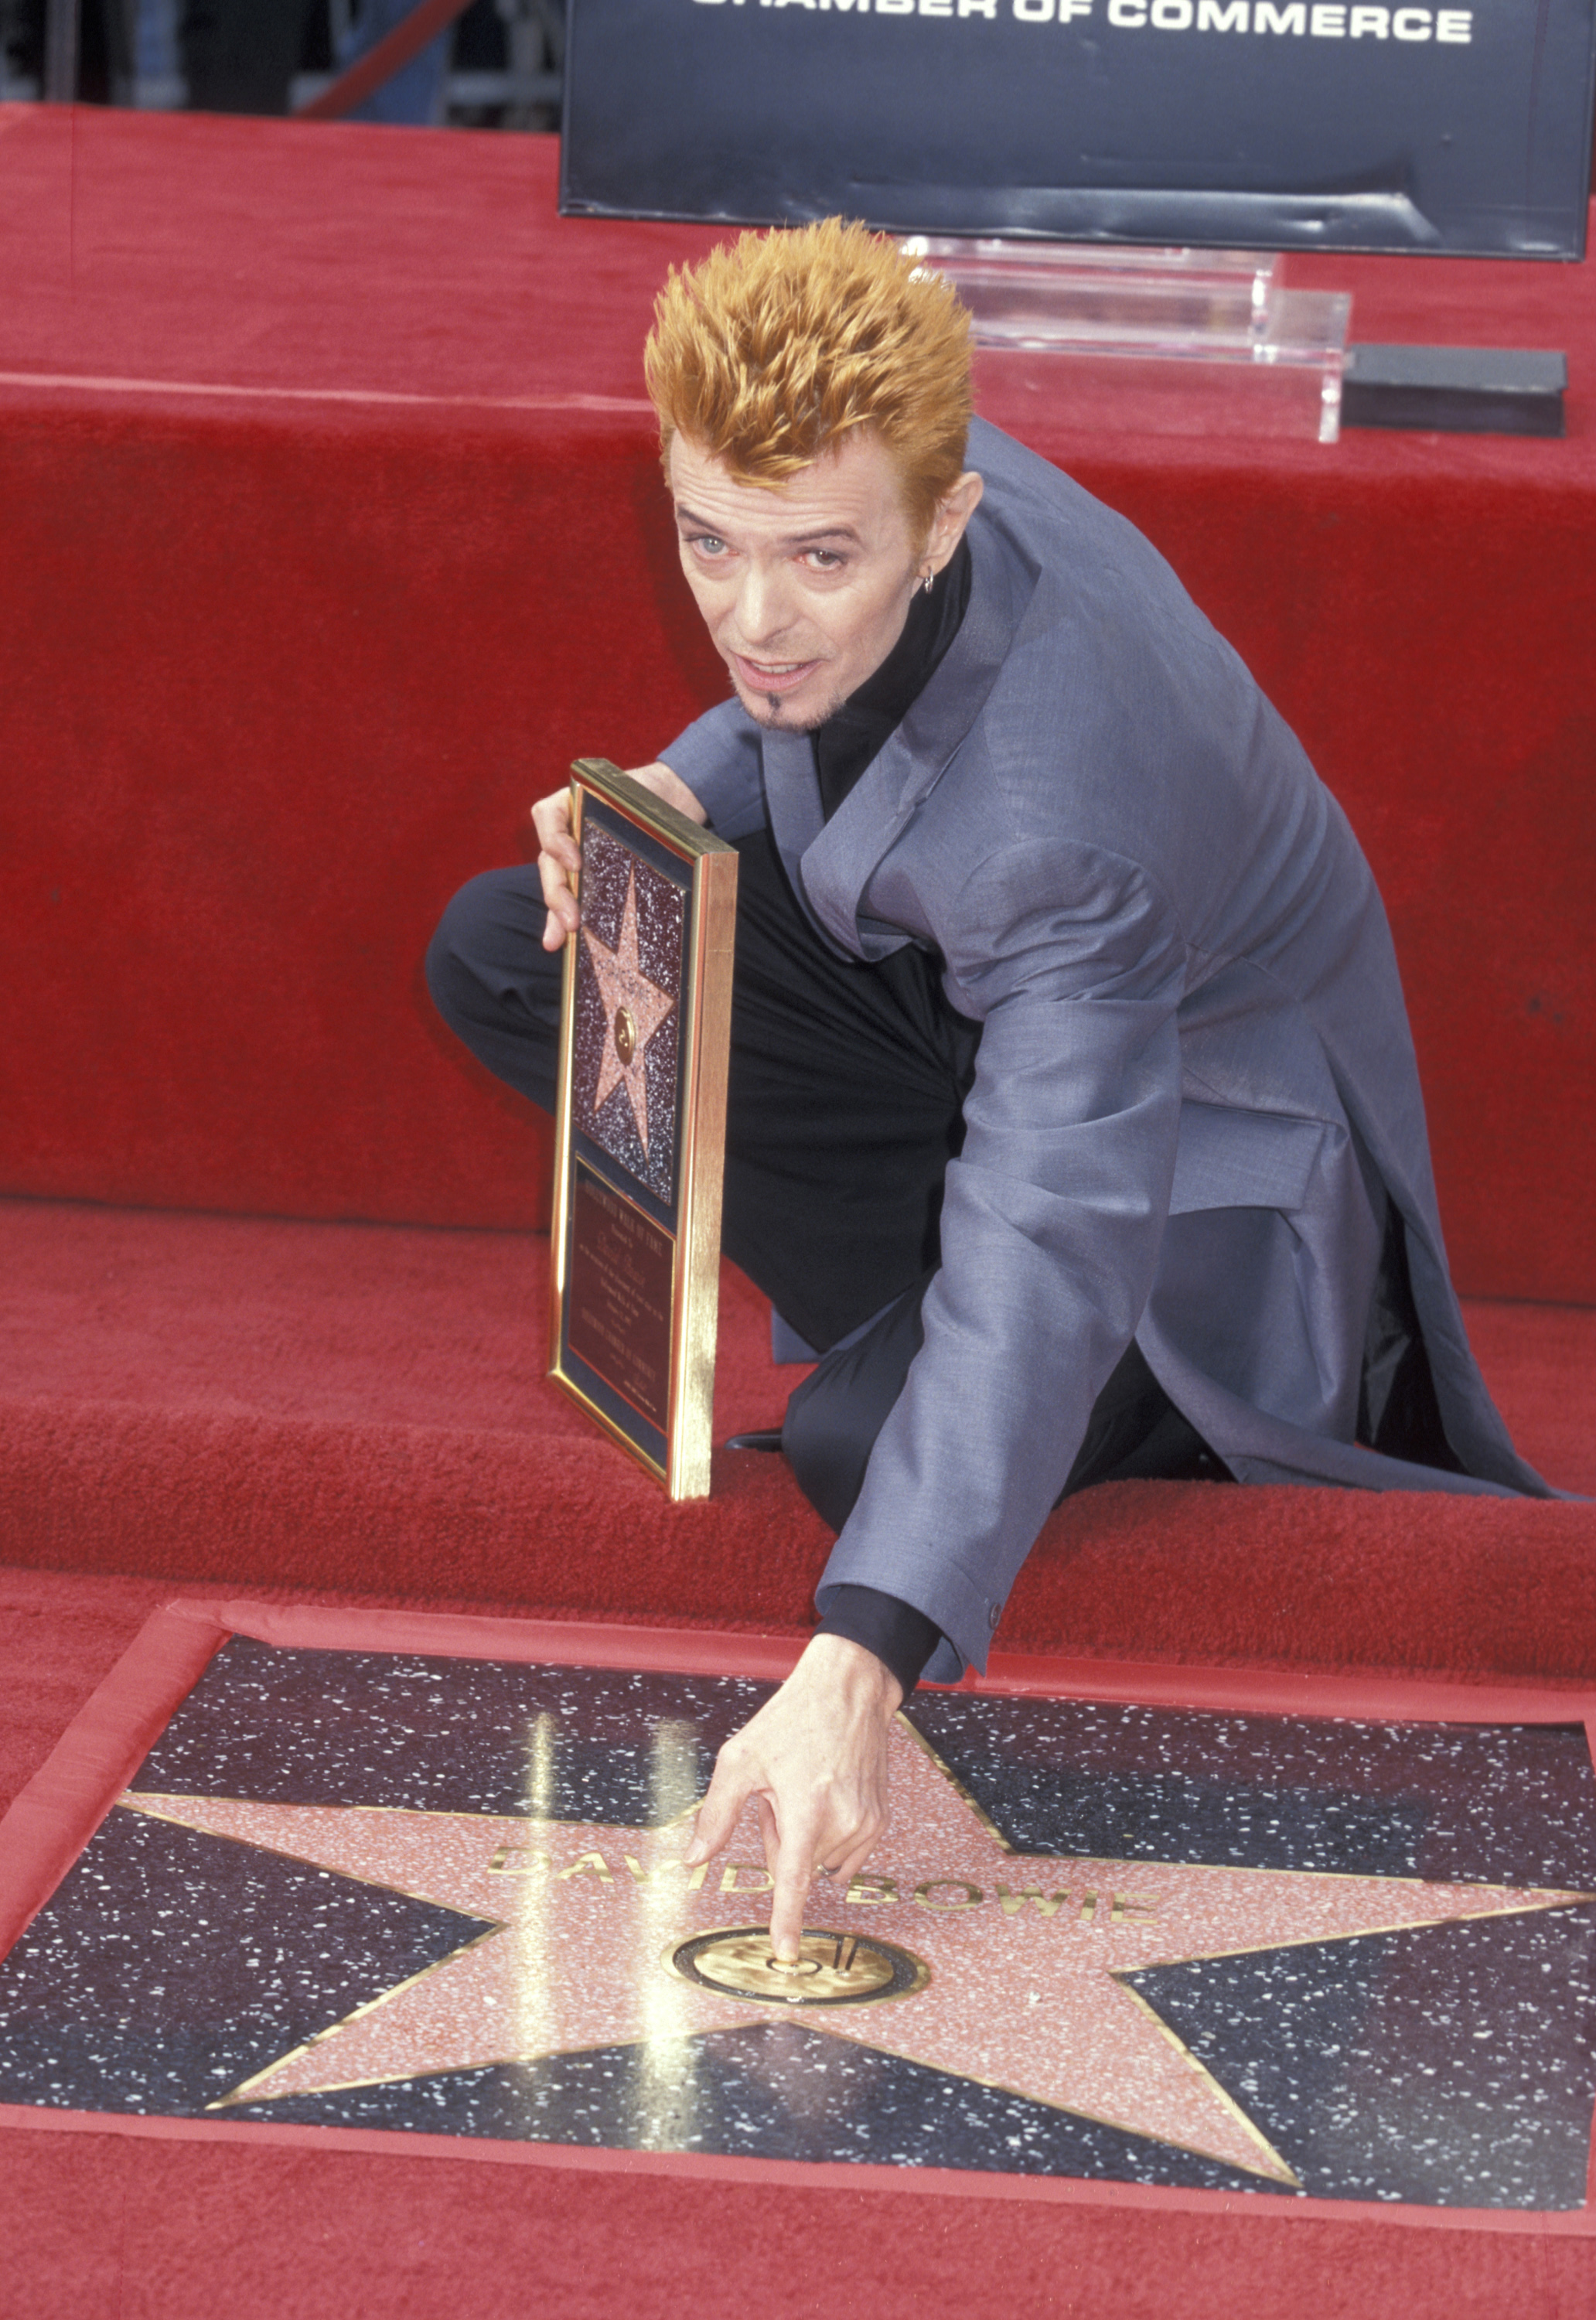 David Bowie is seen while being honored with a star on the Hollywood Walk of Fame in Hollywood, Calif. on Feb. 12, 1997.